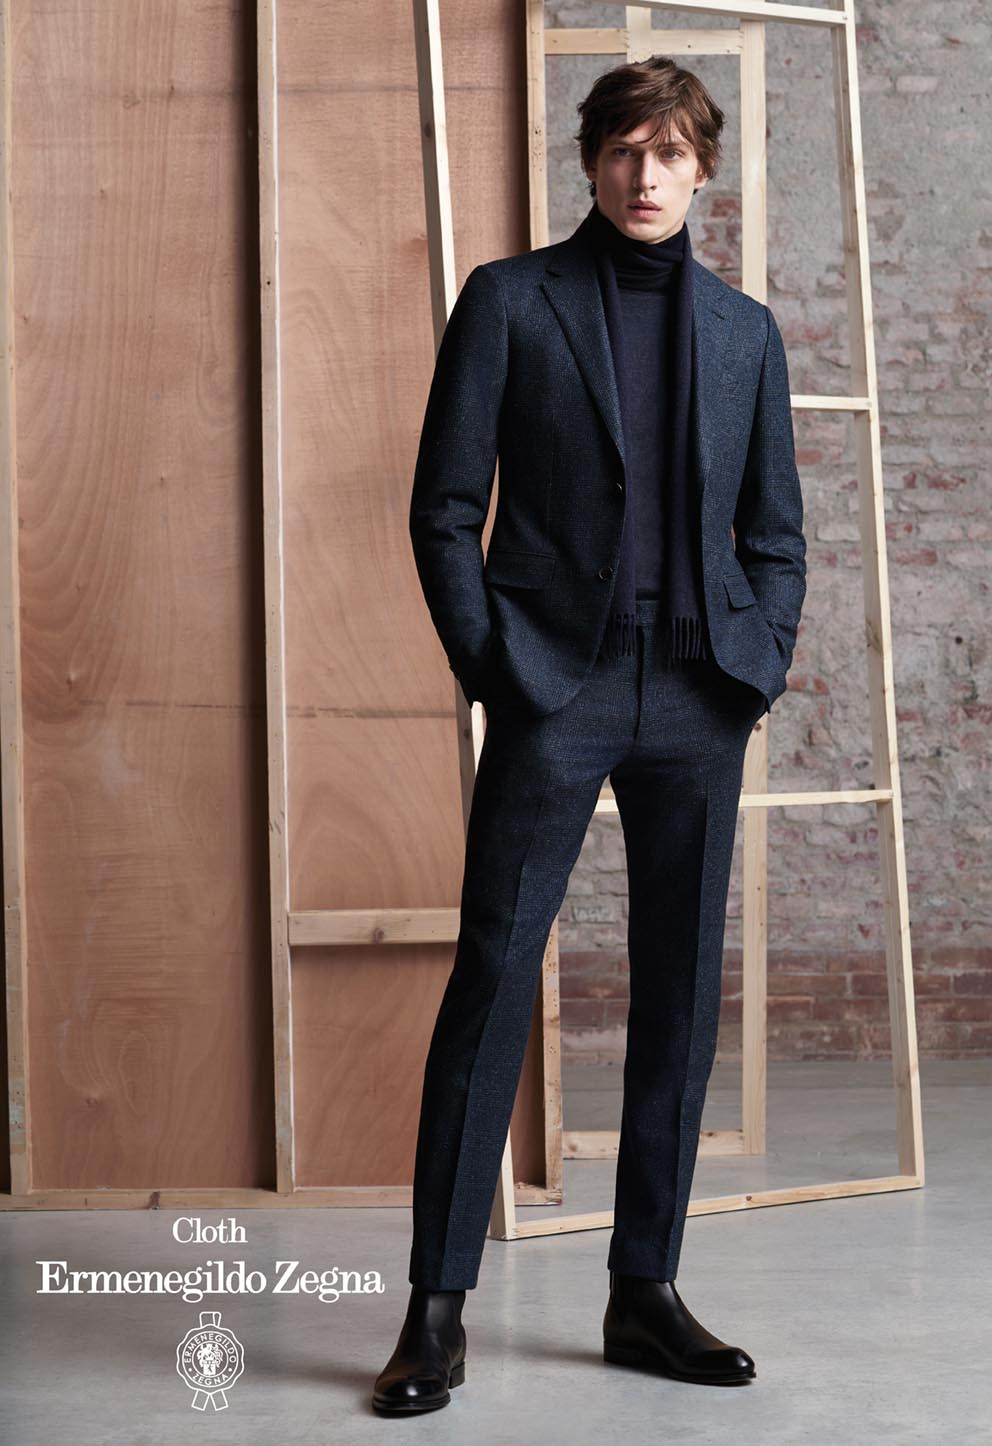 Stoff E. Zegna Herbst/Winter 2020 sportiver Chic